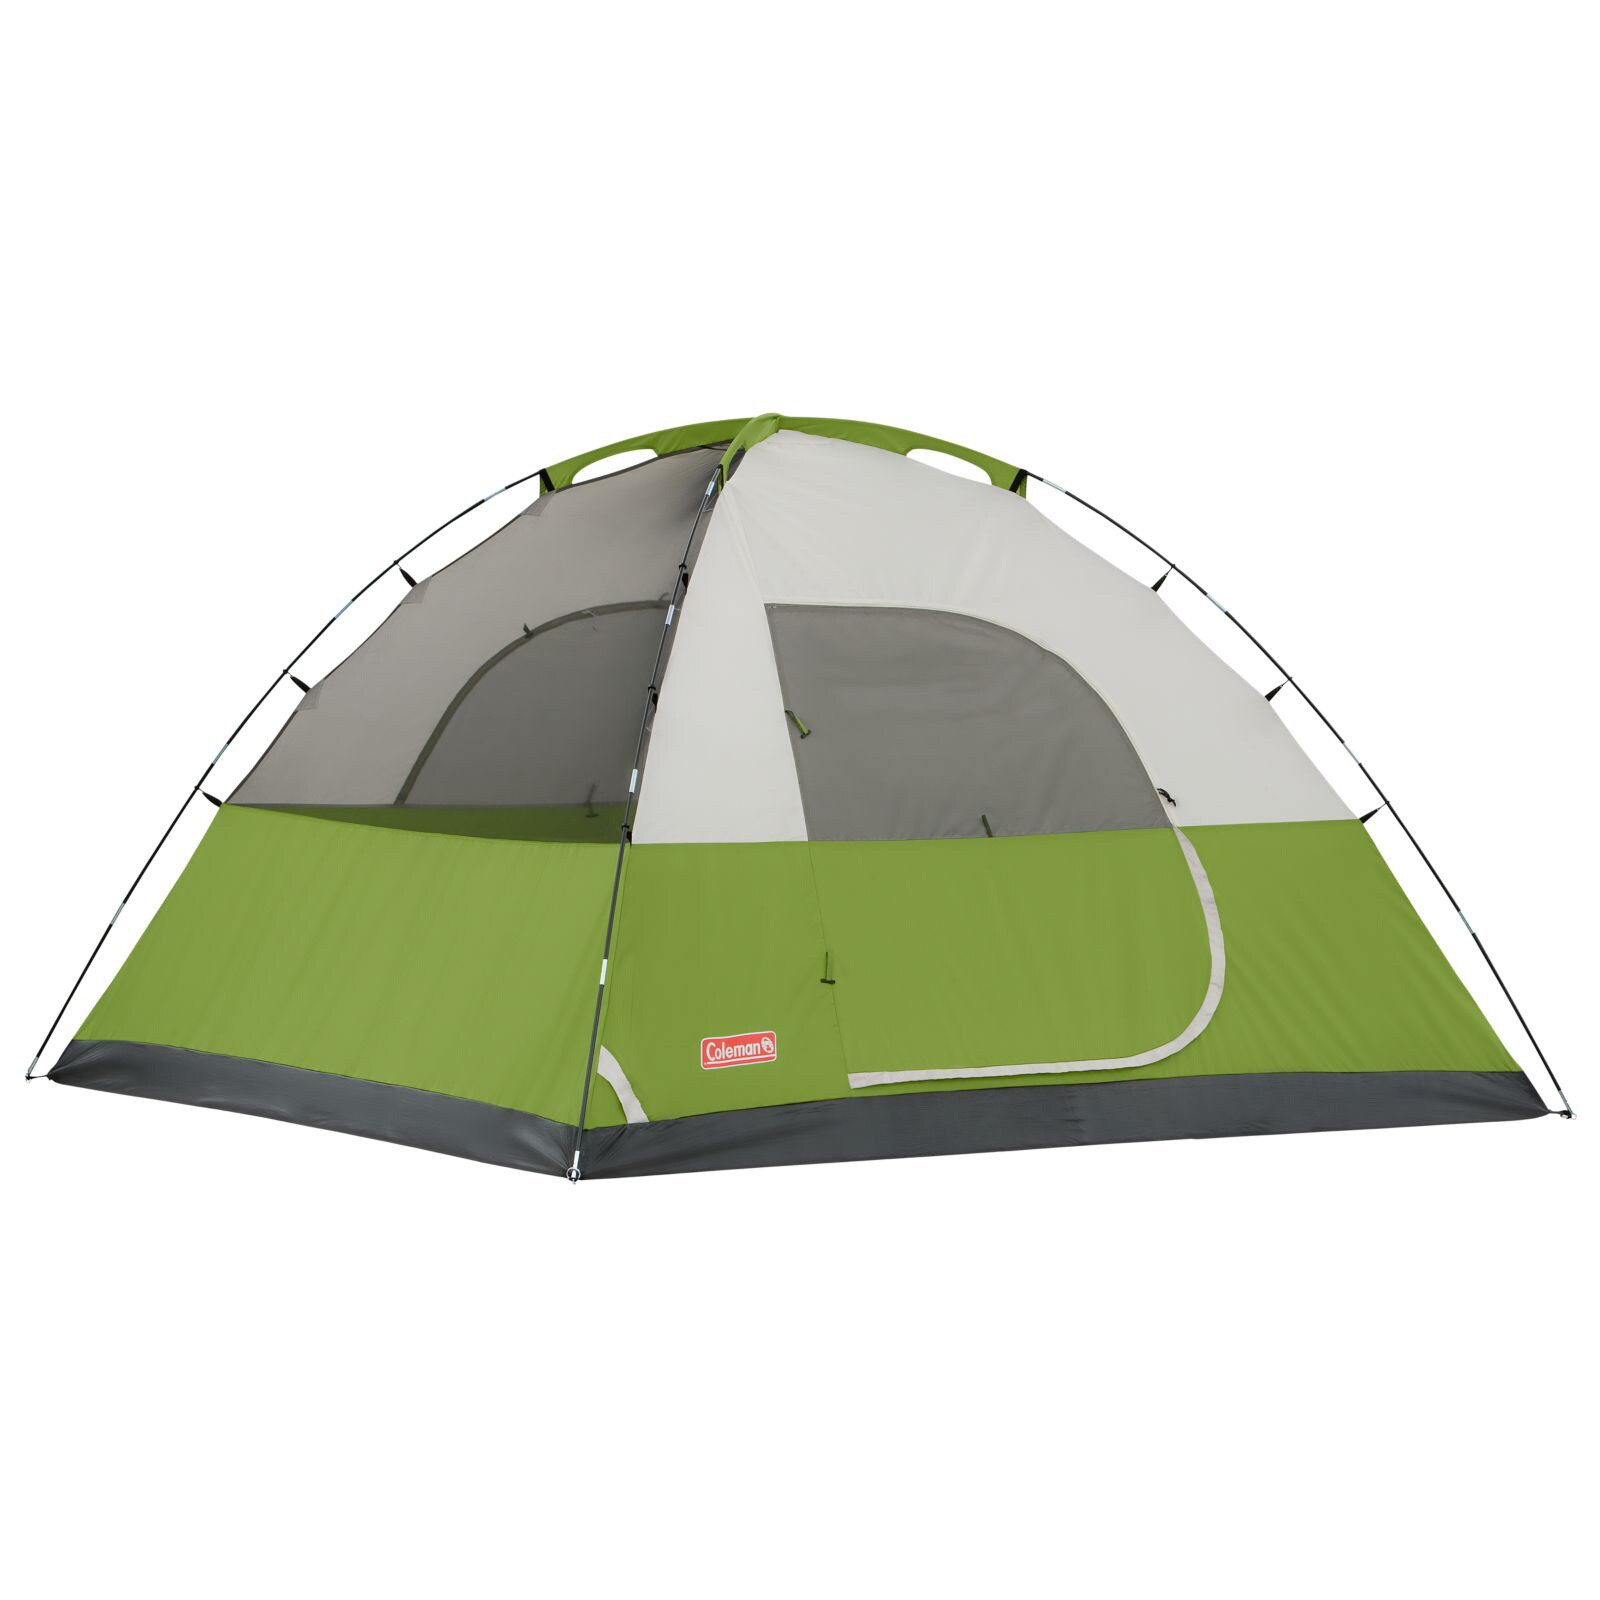 Coleman Sundome 6-person Tent (10u0027 x 10u0027) - Free Shipping Today - Overstock.com - 11968057  sc 1 st  Overstock & Coleman Sundome 6-person Tent (10u0027 x 10u0027) - Free Shipping Today ...